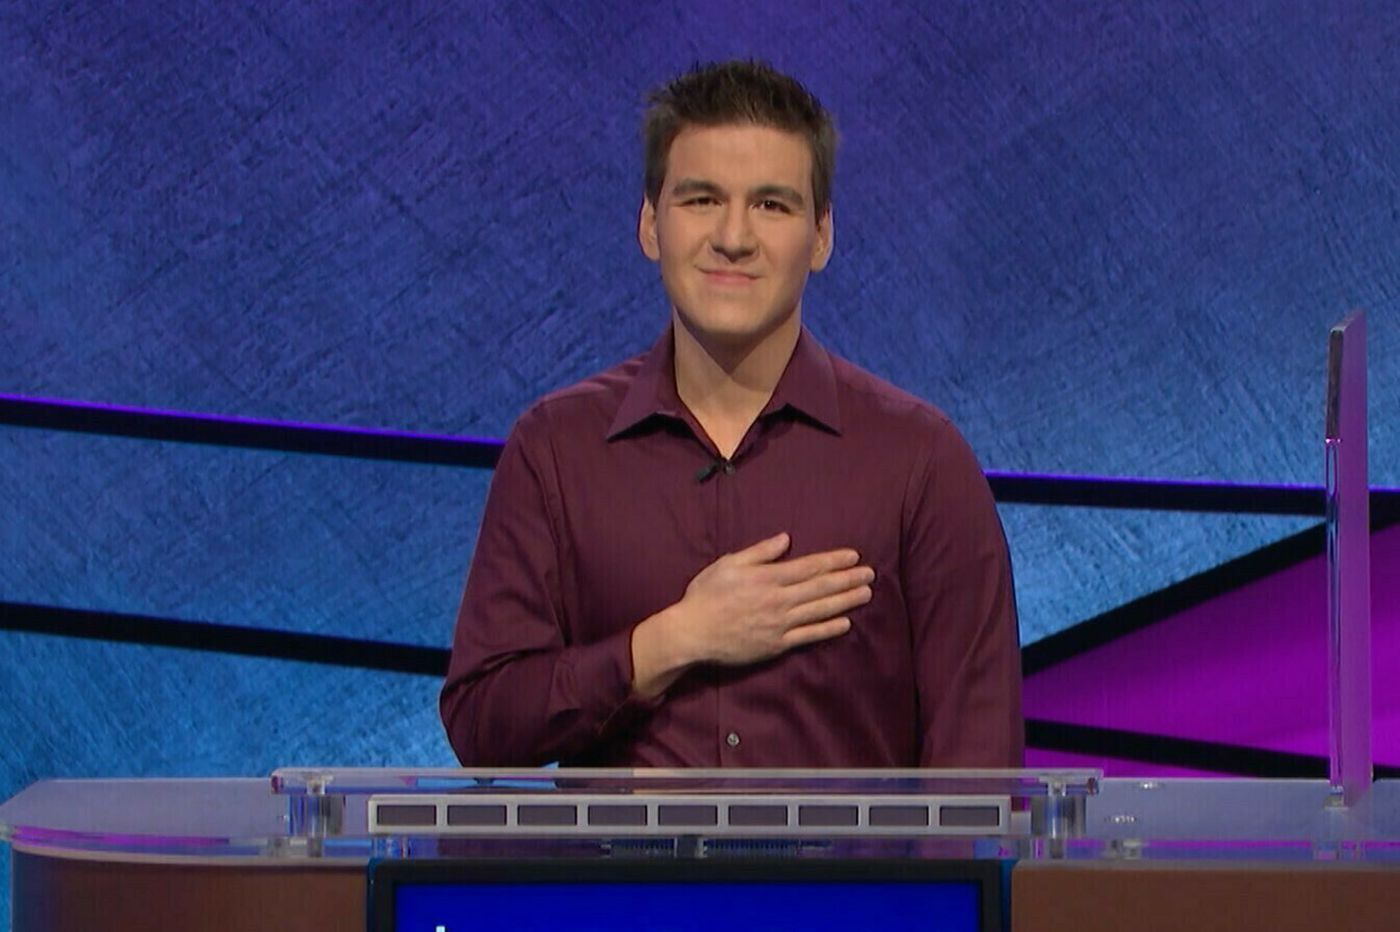 'Jeopardy!' champ James Holzhauer returns to the air Monday in bid to resume winning streak